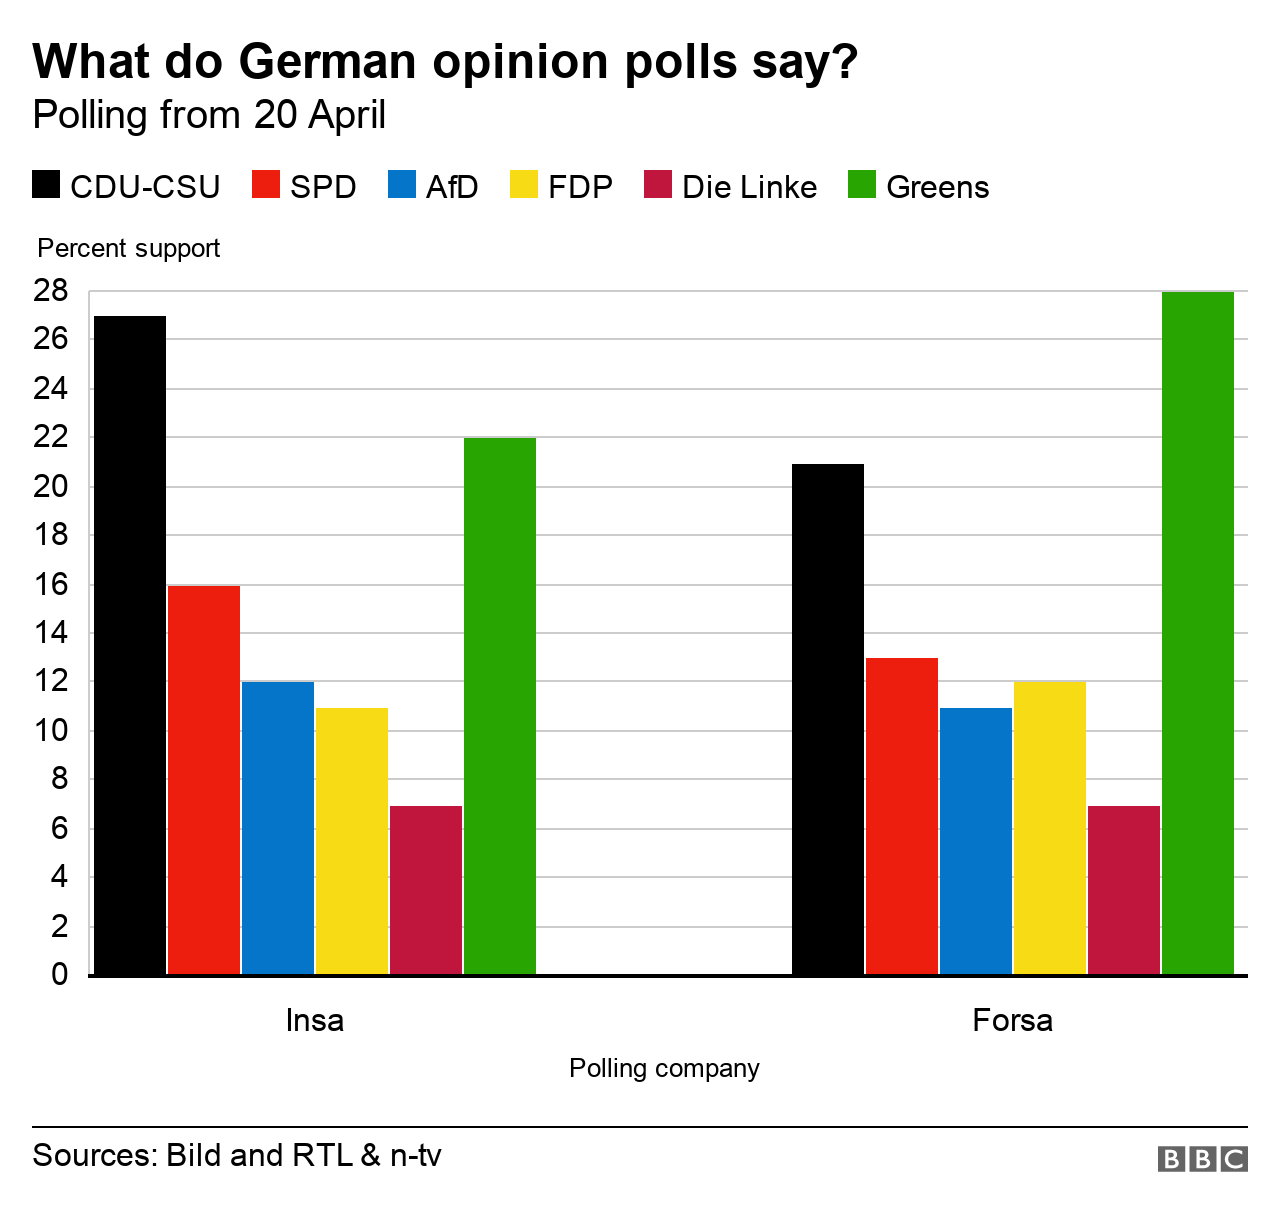 Charts showing German opinion polls on 20 April 2021